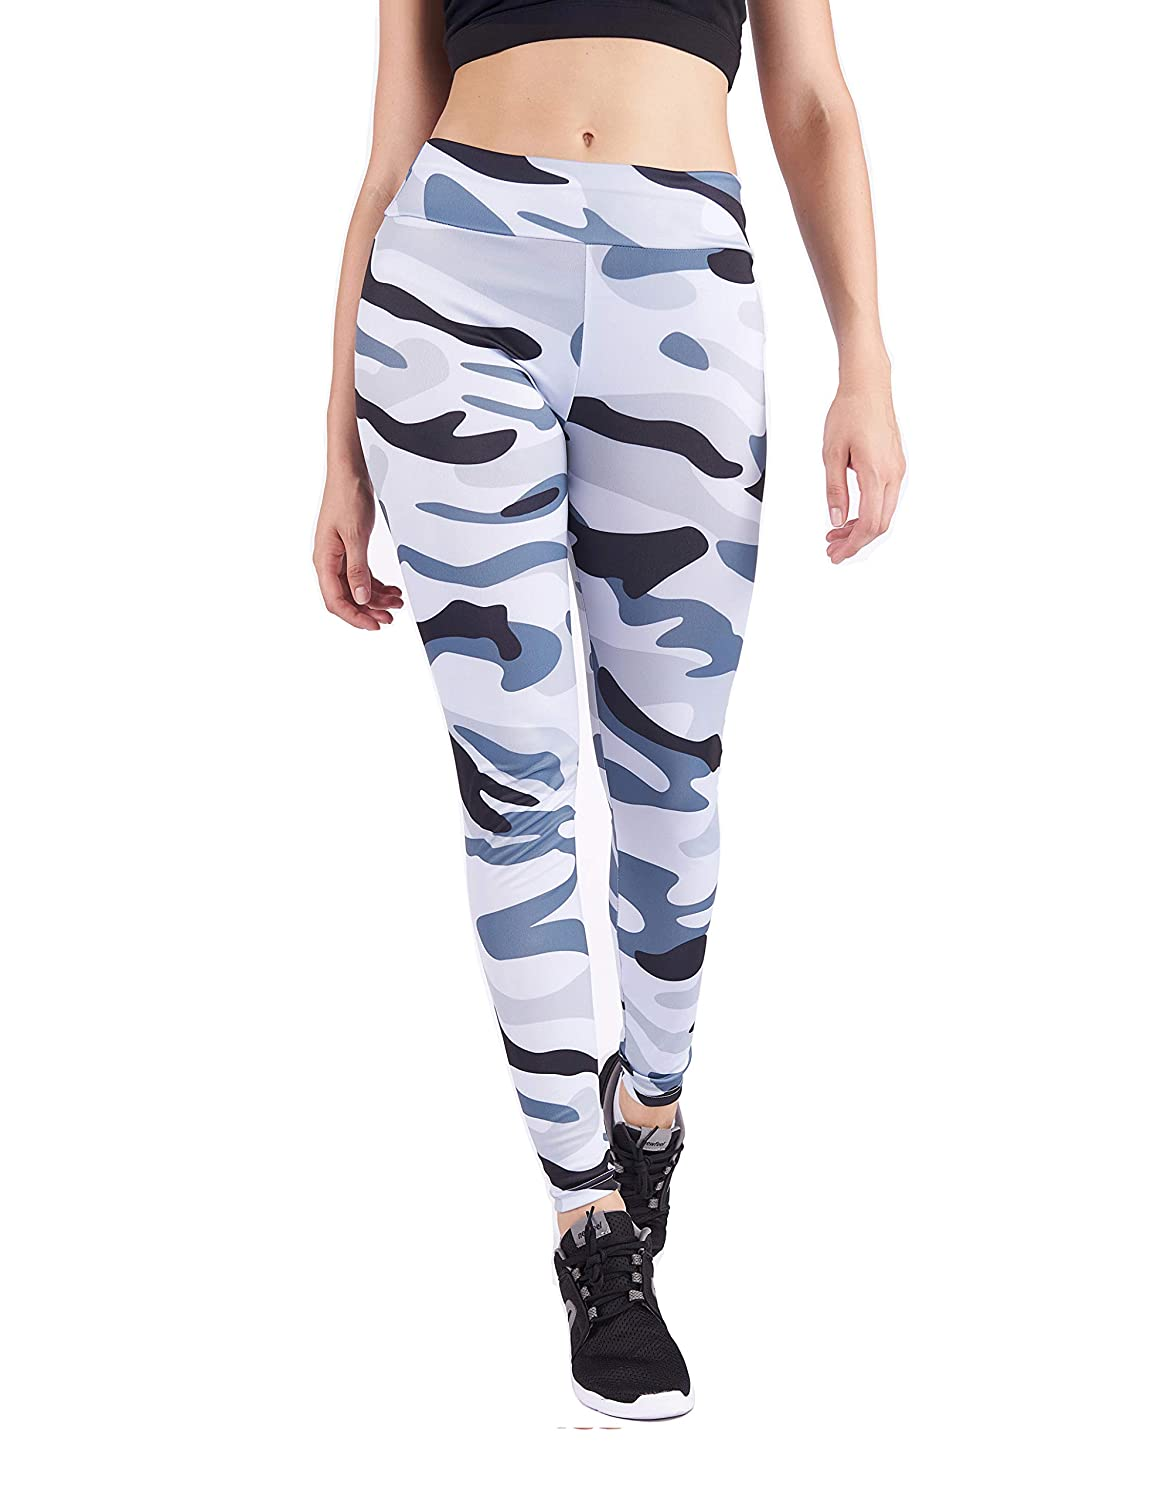 Ccamouflage Green DrKr High Waist Yoga Pants Tummy Control Workout Leggings for Women